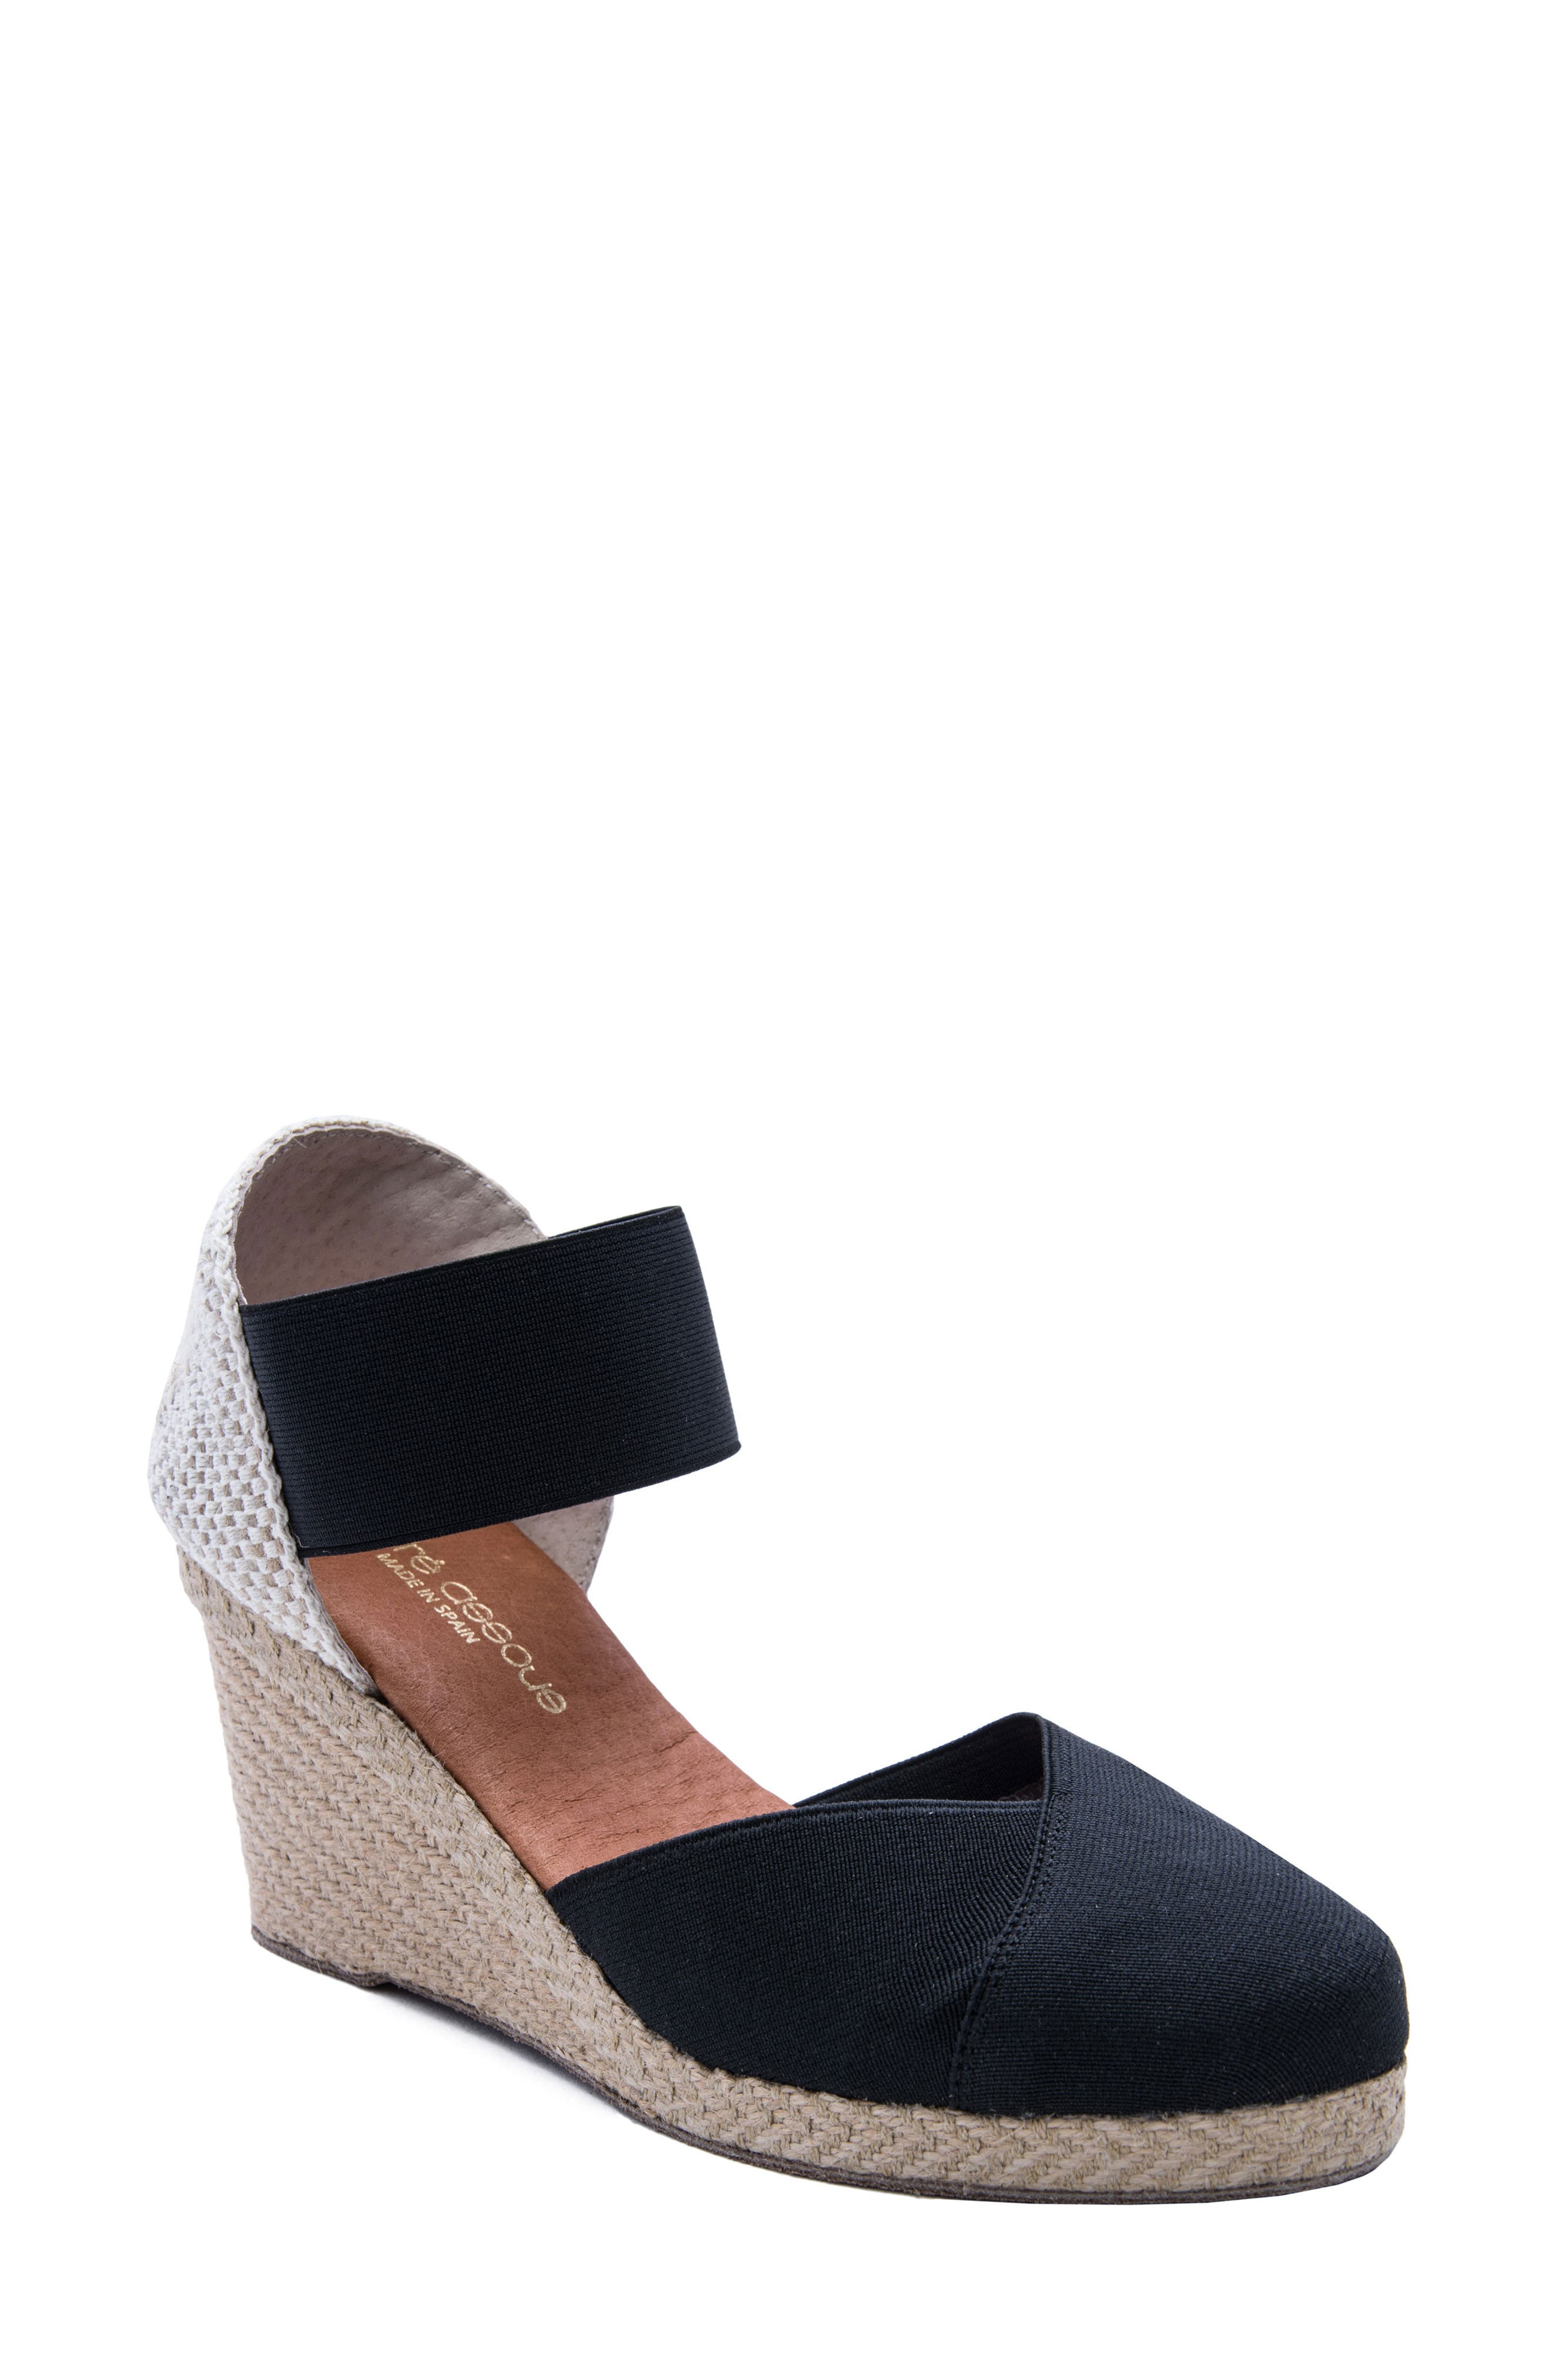 ANDRE ASSOUS Anouka Espadrille Wedge in Black Fabric